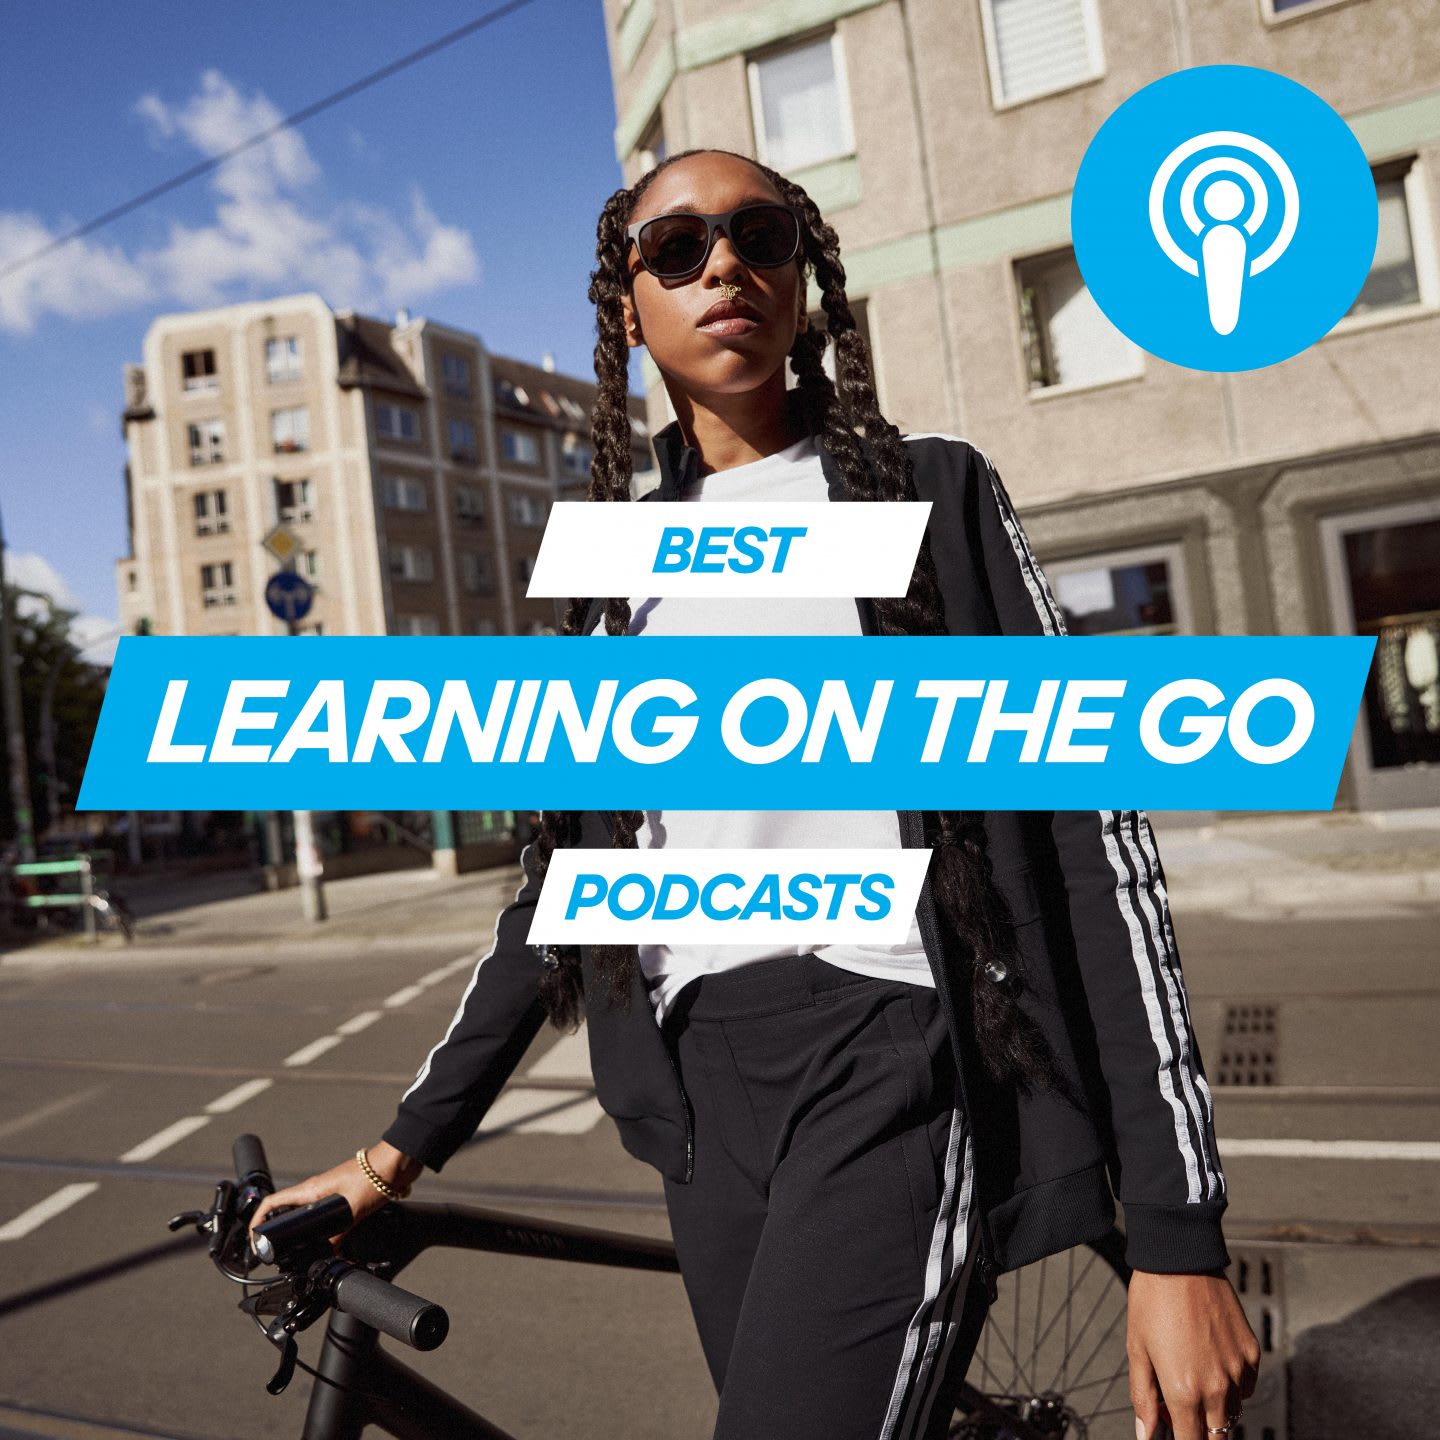 GamePlan A recommendations for best podcasts for learning on the go, listening, growth mindset, podcasts, corporate athlete